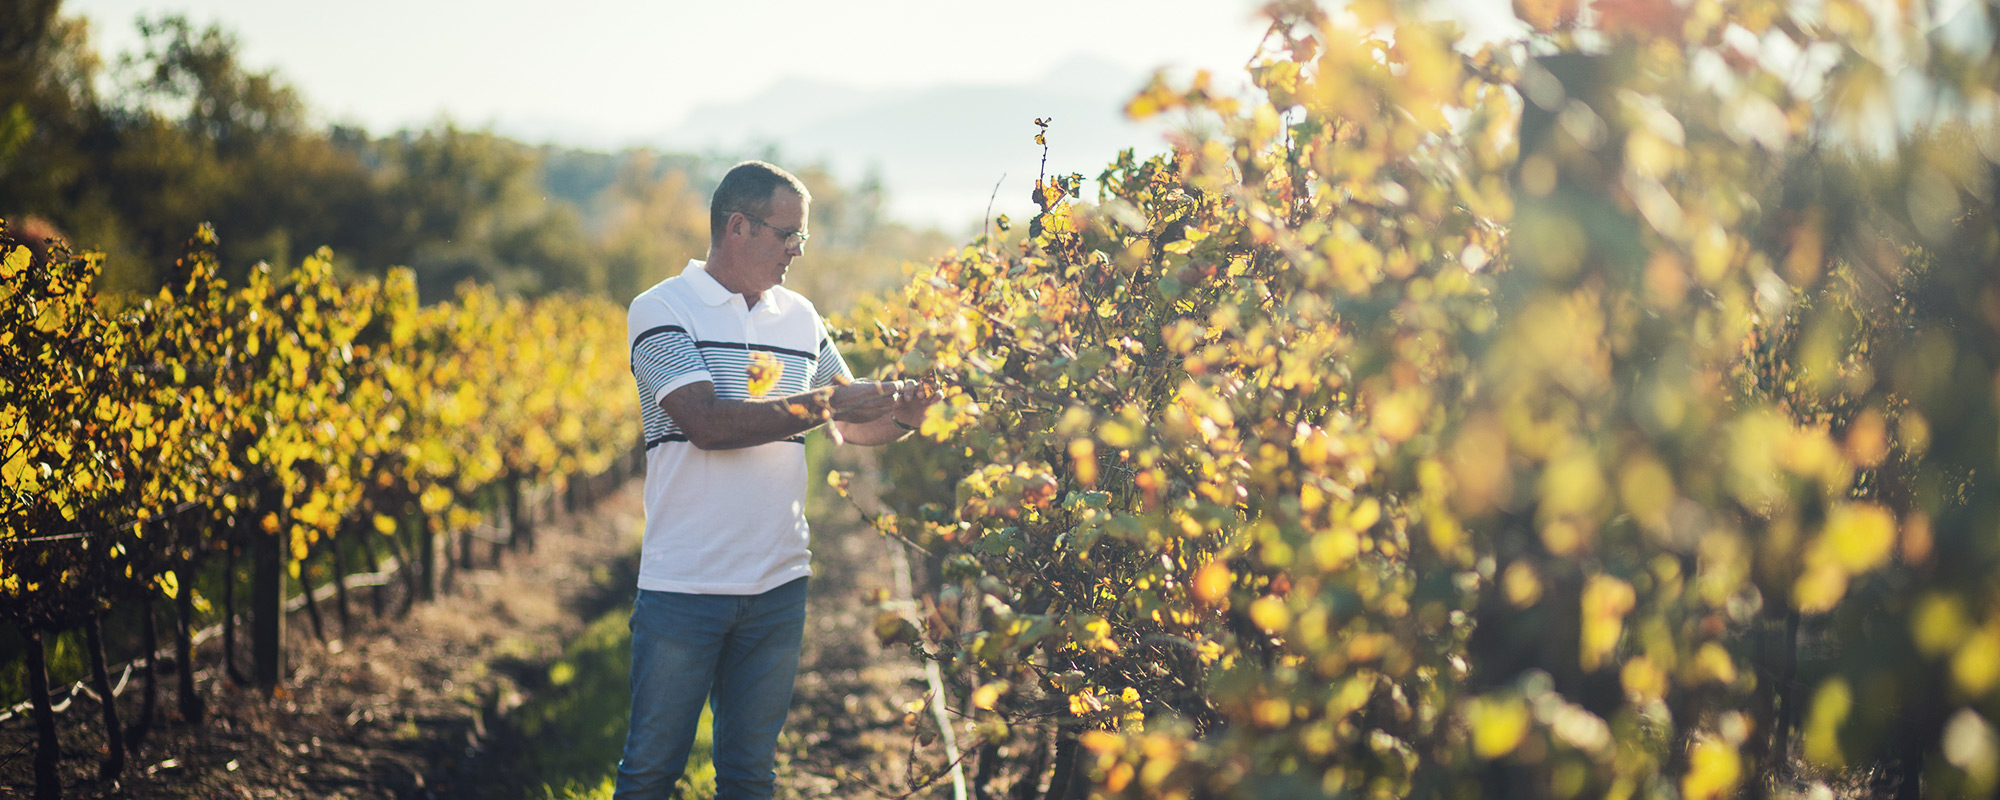 Niel Bester inspecting grapes in the vineyards of Plaisir de Merle